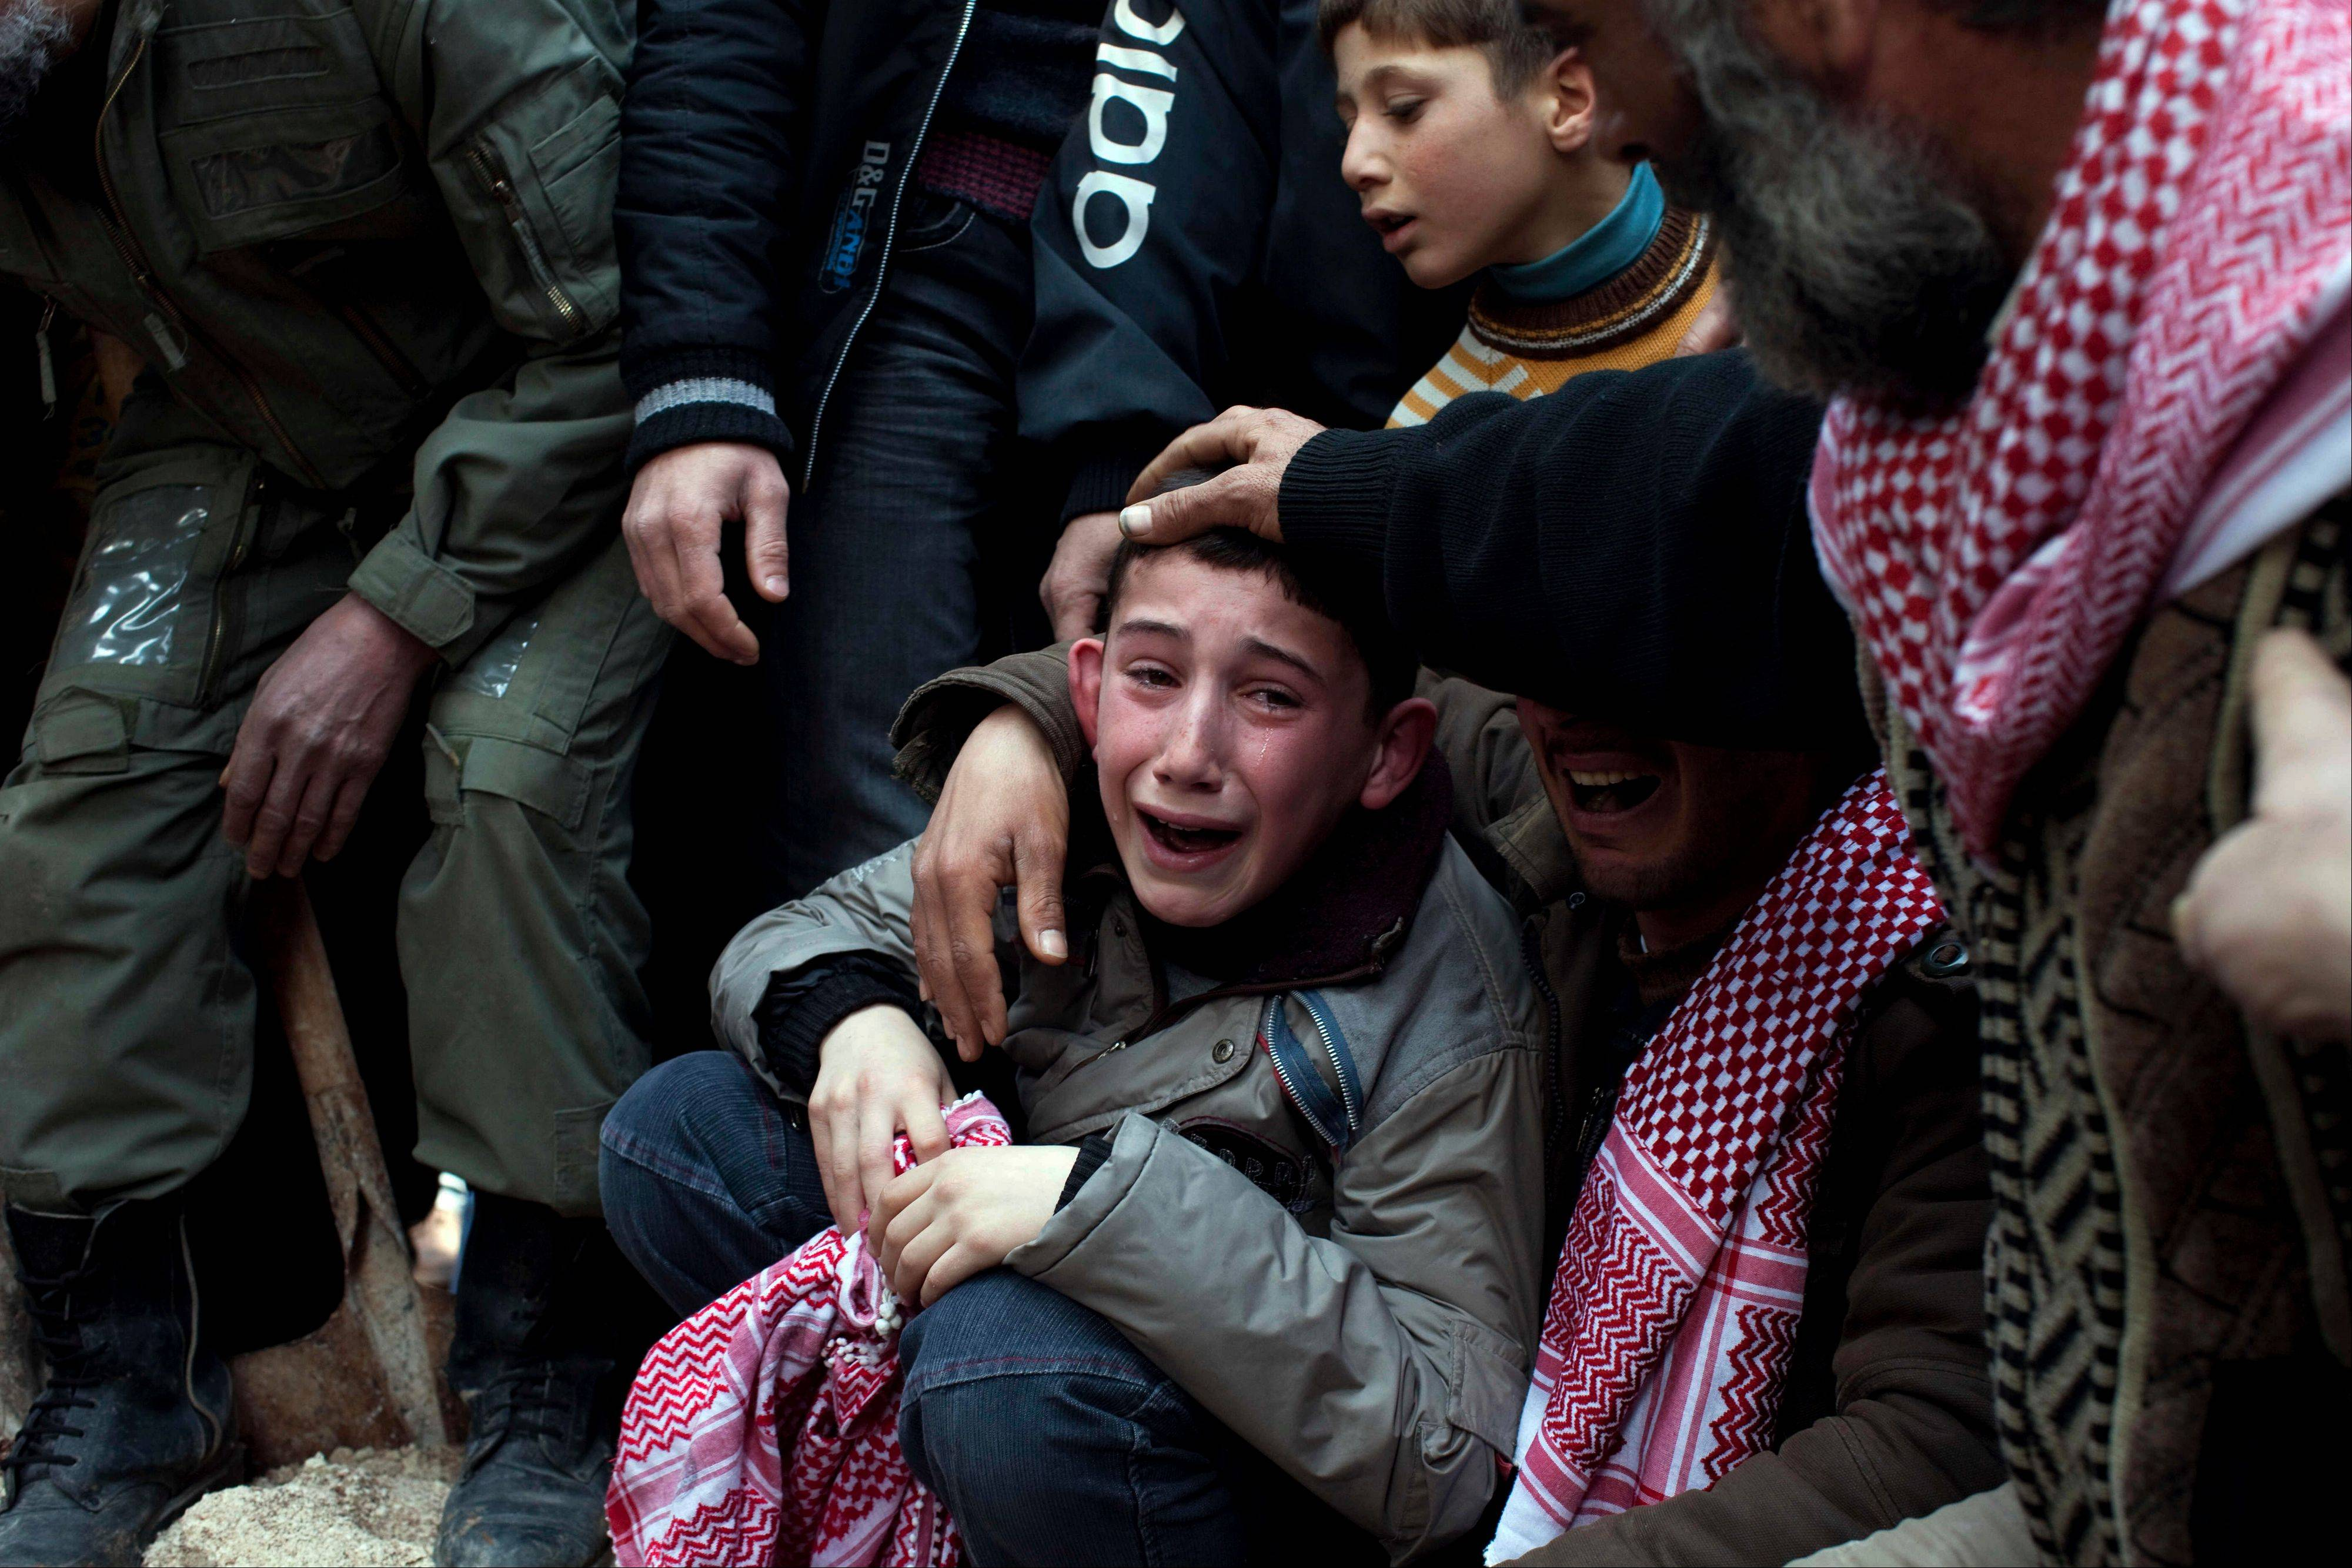 Ahmed, center, mourns his father Abdulaziz Abu Ahmed Khrer, who was killed by a Syrian Army sniper, during his funeral in Idlib, north Syria.